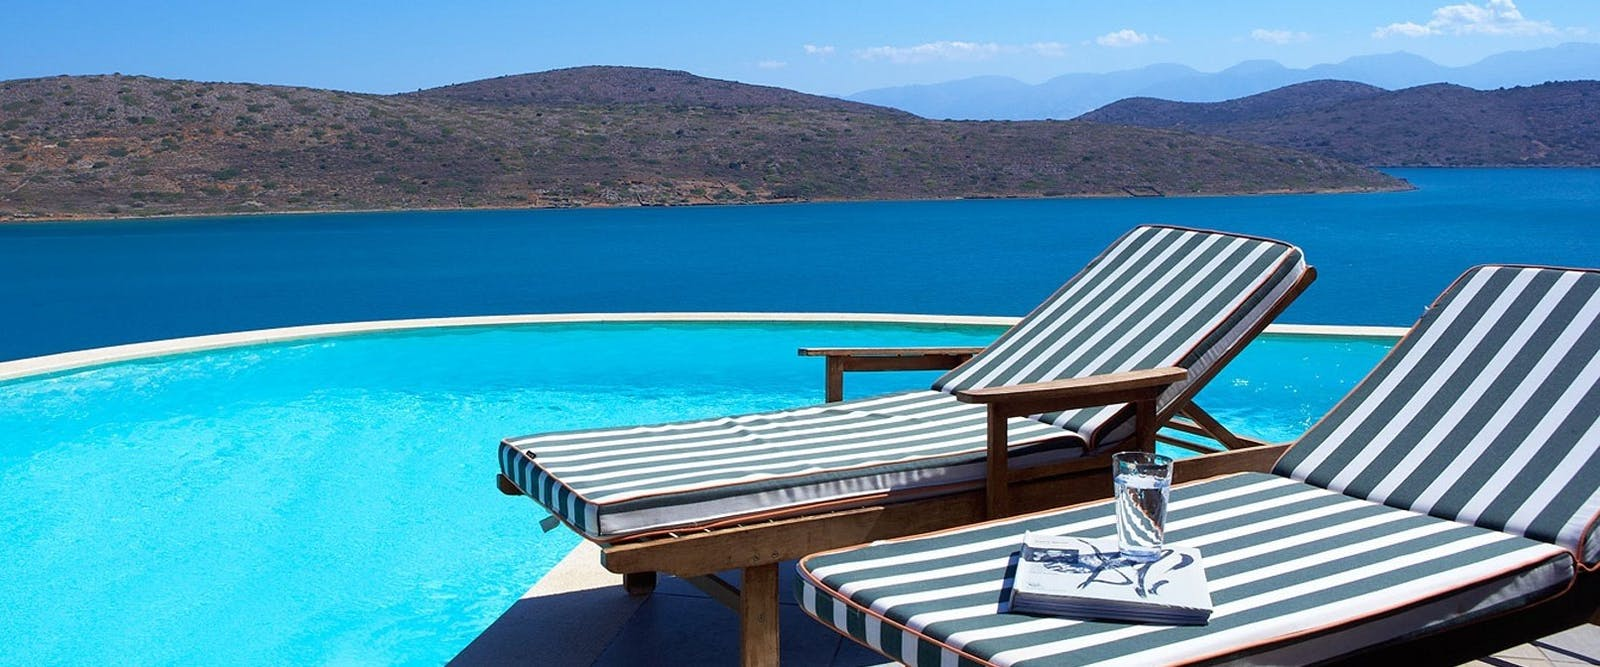 Two Bedroom Ultraluxe Villa at Domes of Elounda, Autograph Collection, Crete, Greece